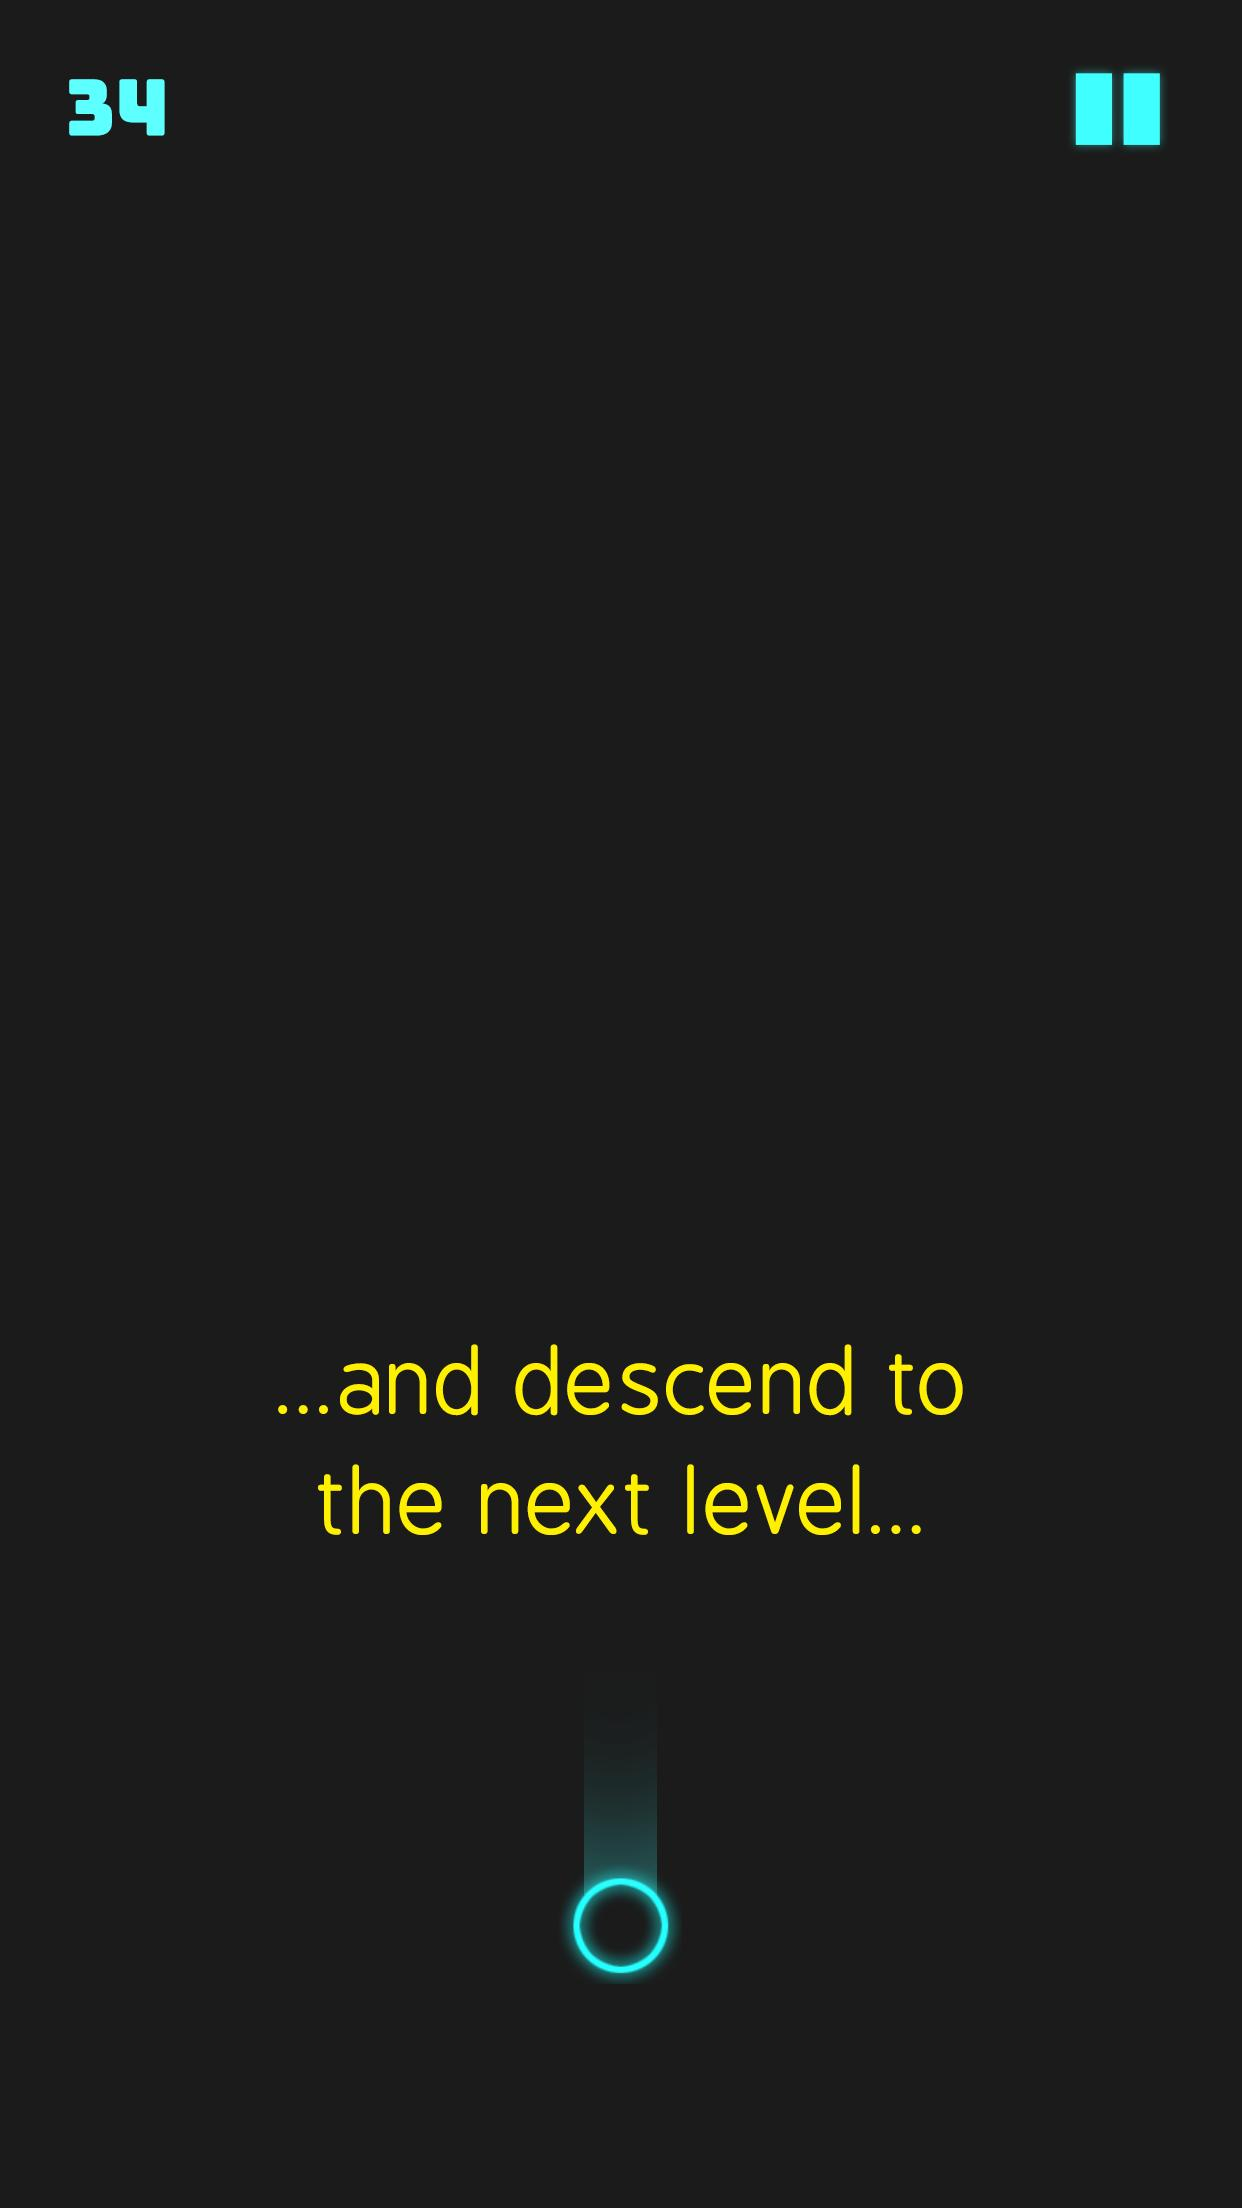 Neon Descent - ball bounce game 1.3 Screenshot 8